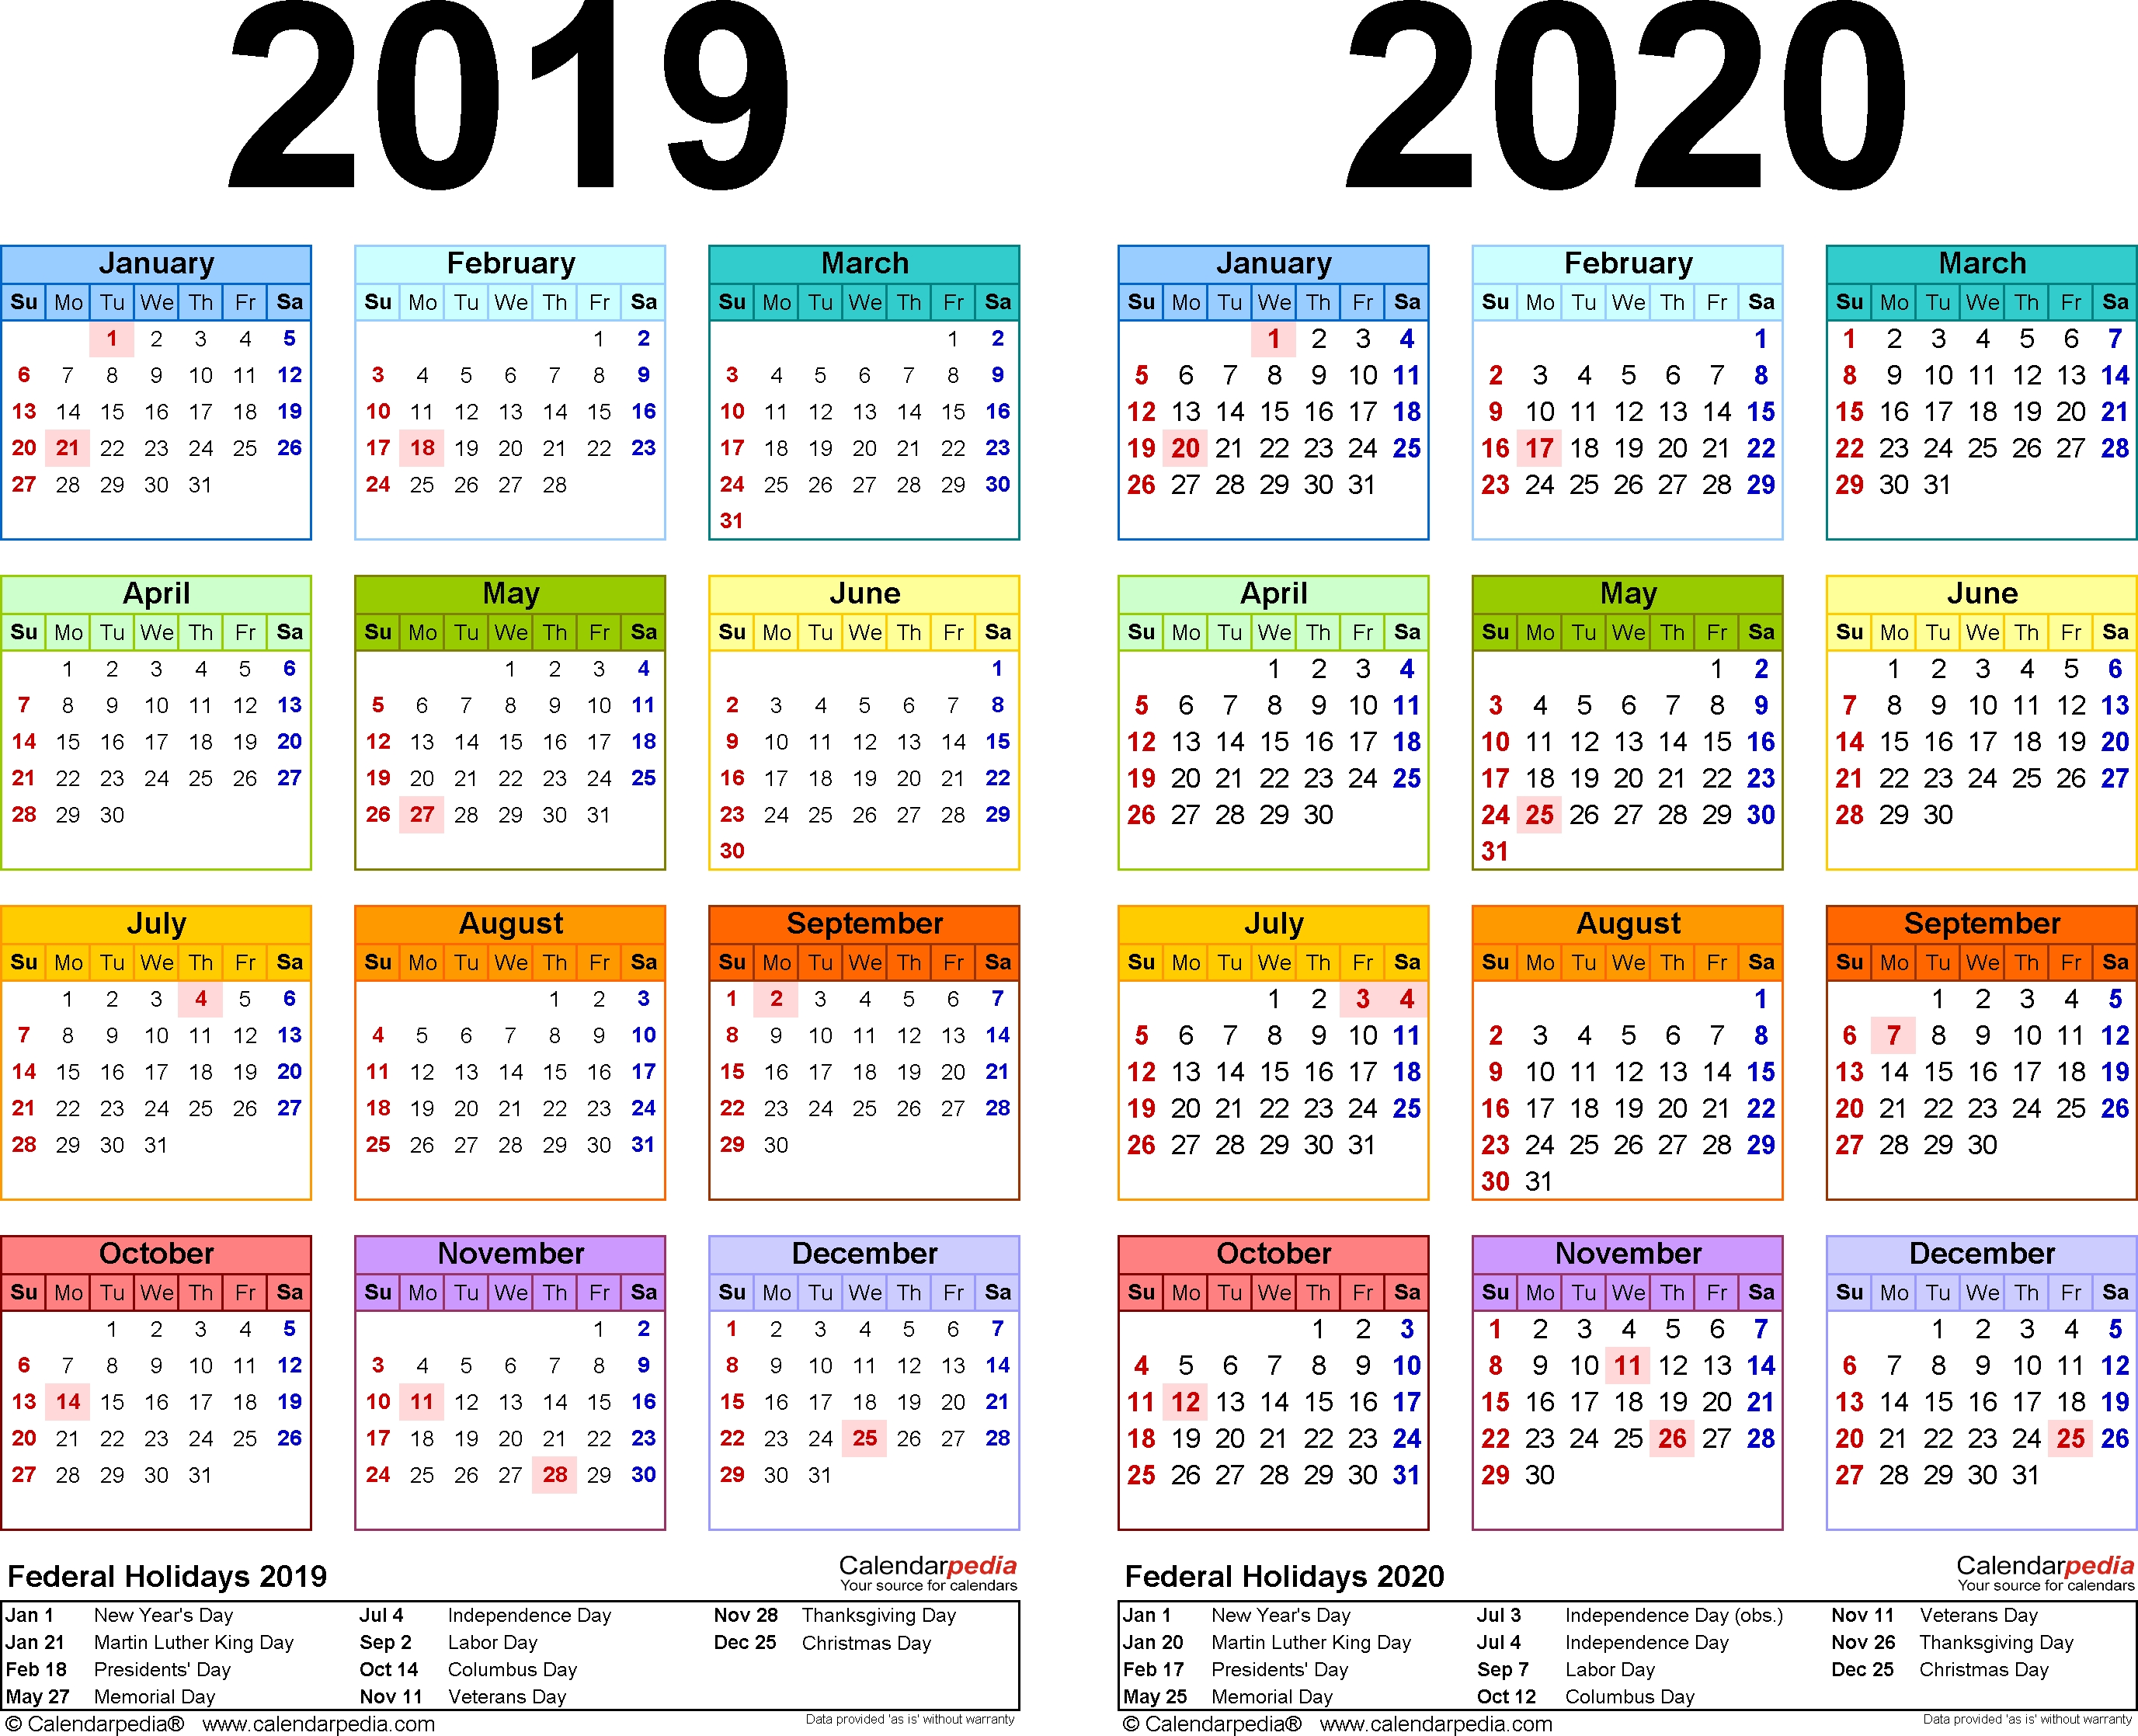 2019-2020 Calendar - Free Printable Two-Year Pdf Calendars within Free Printaabke Calendars For 2019-2020